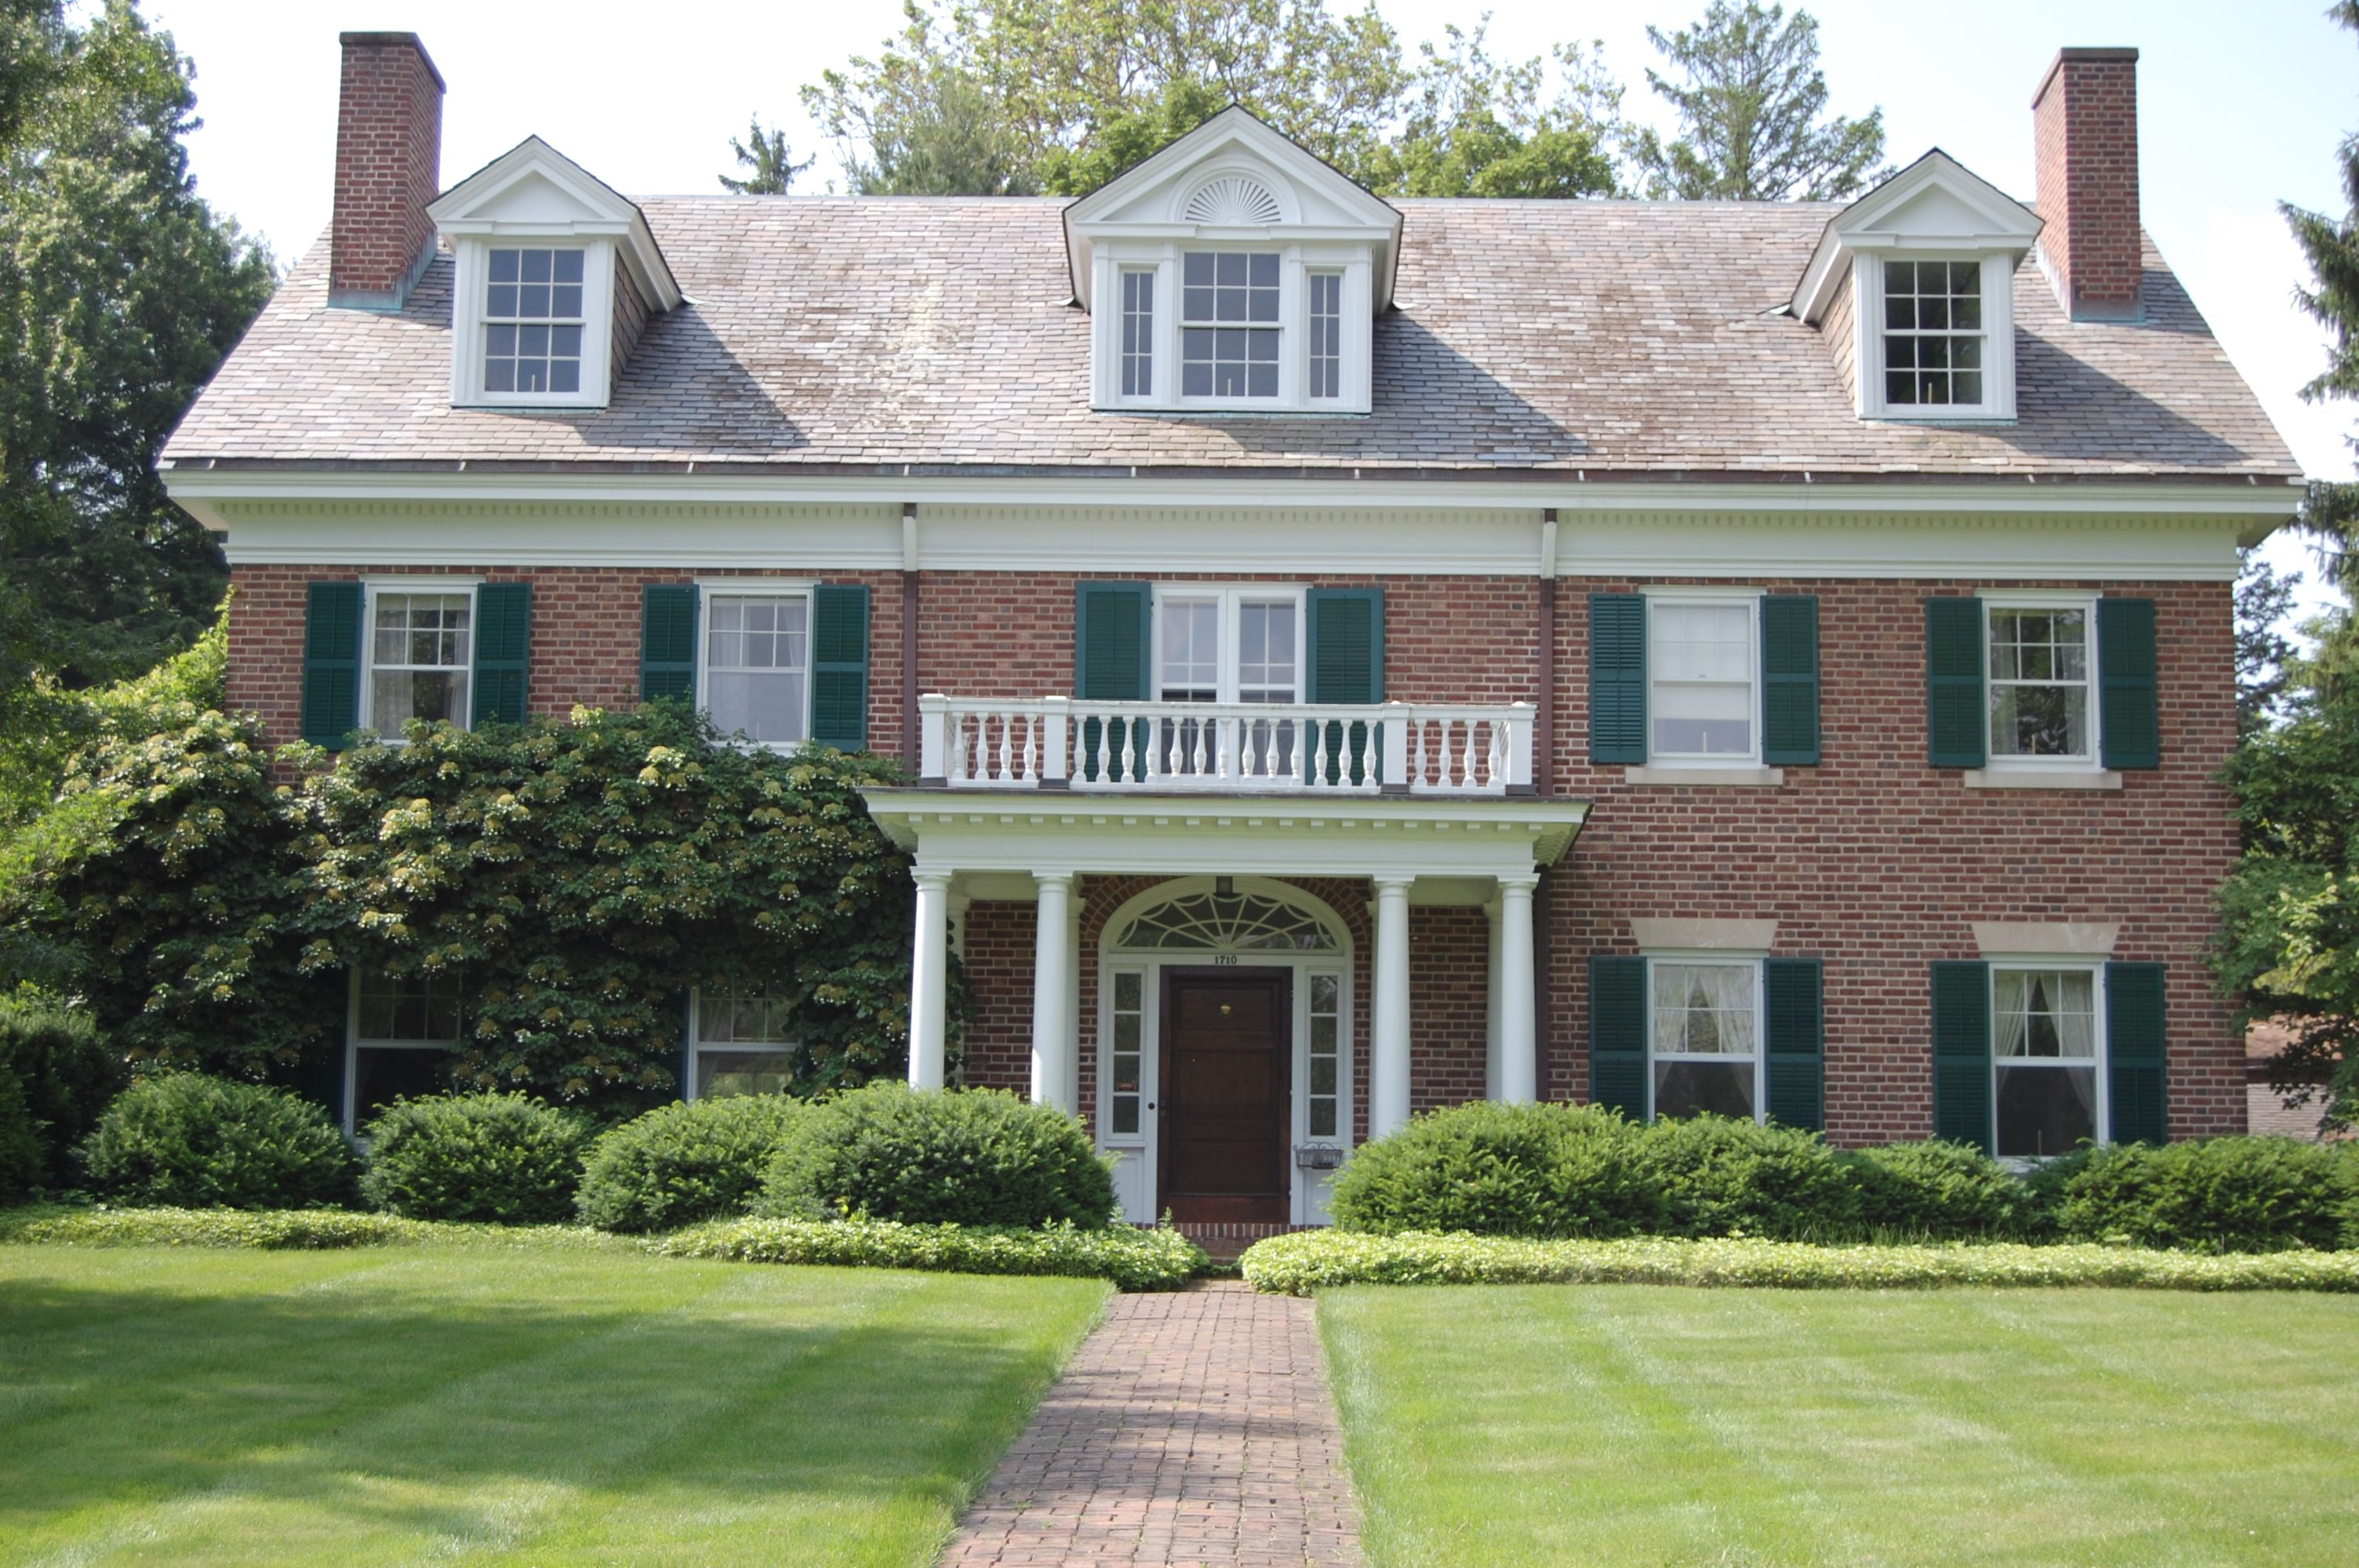 Georgian Colonial Revival houses are a symmetrical beauty.